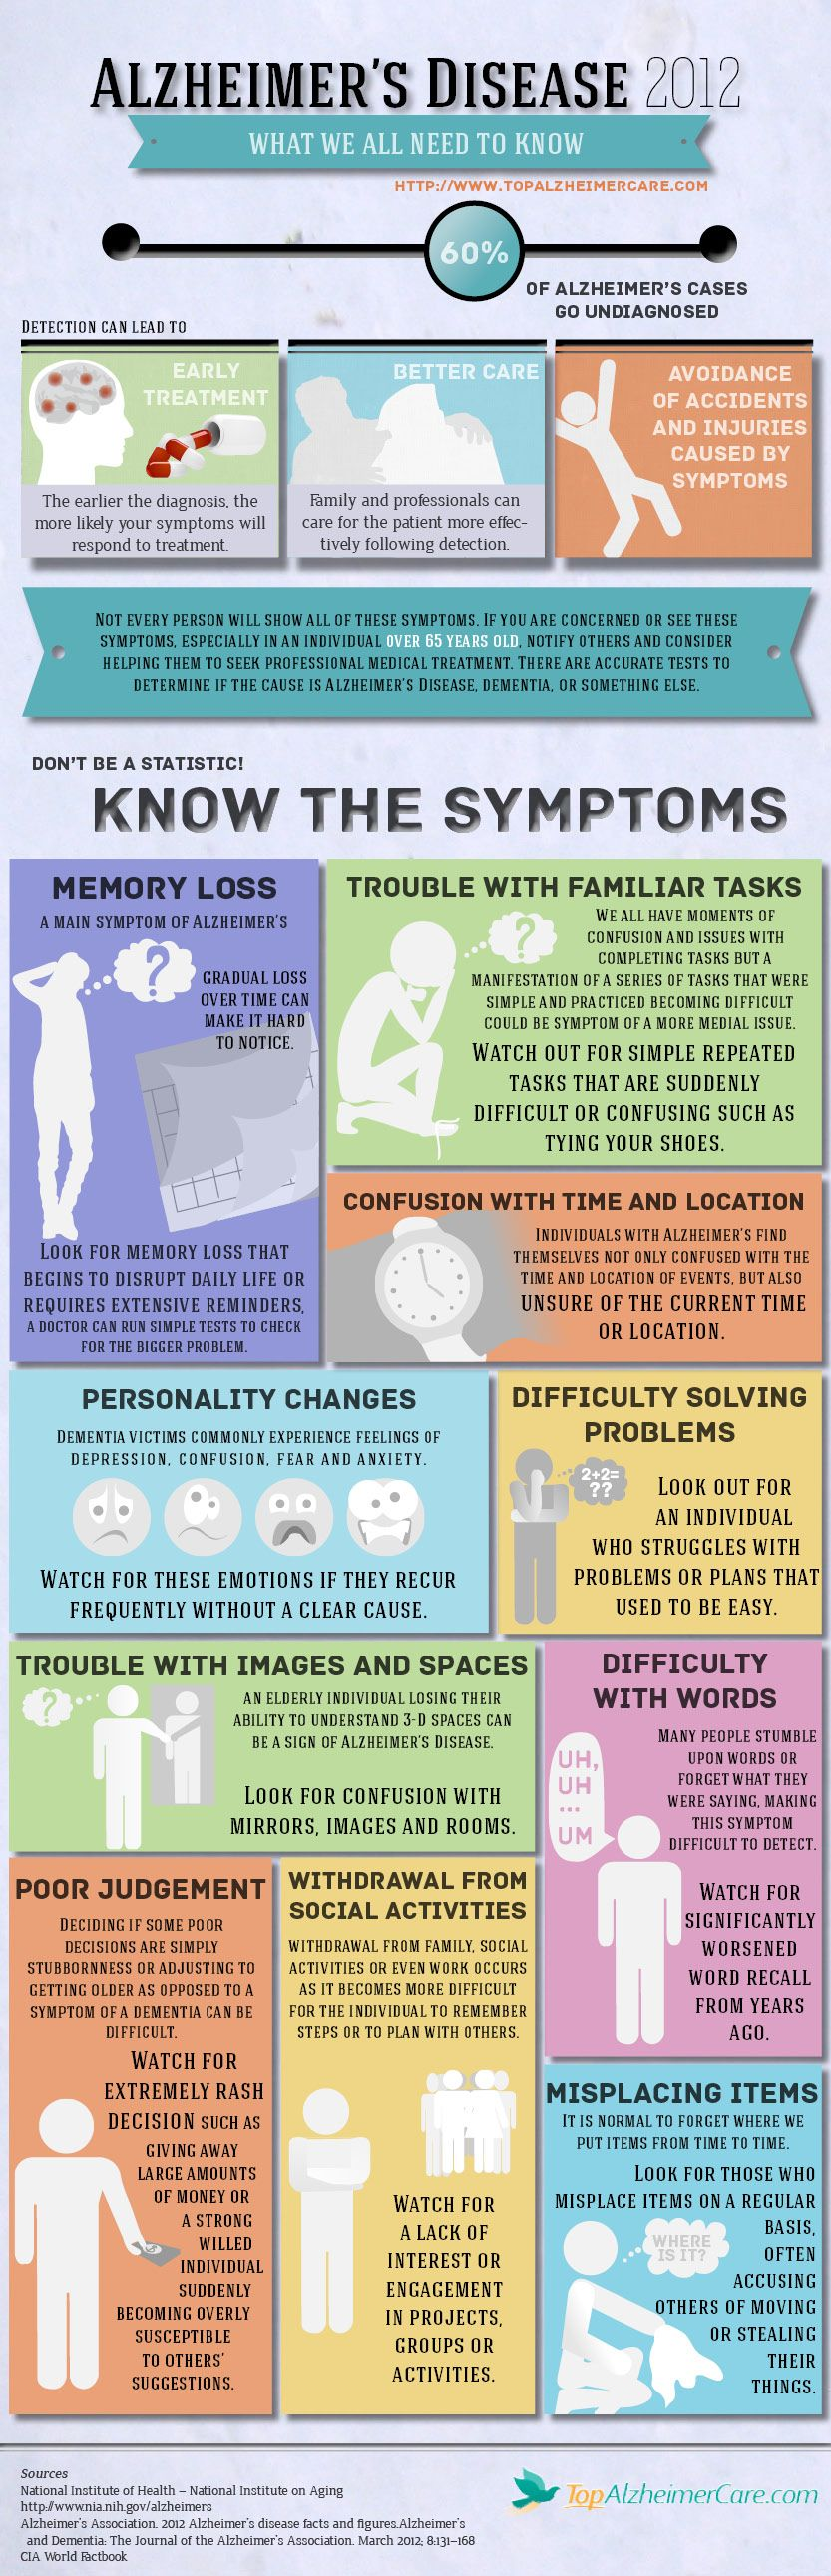 Alzheimer's Disease 2012: What We All Need To Know [INFOGRAPHIC]